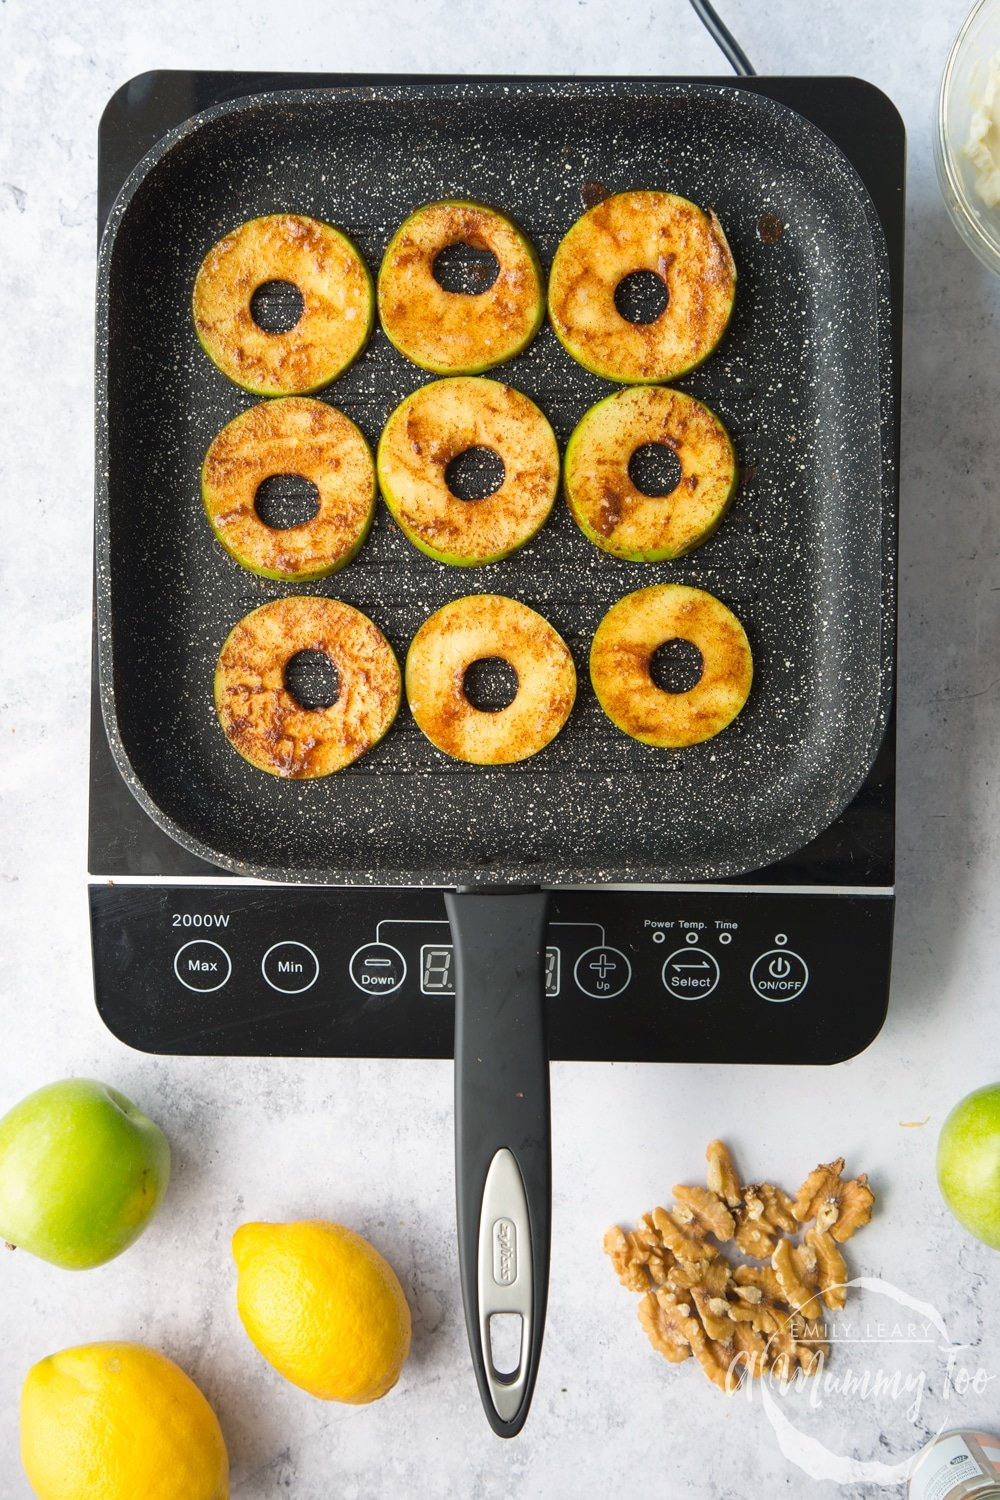 Frying the cinnamon coated apple slices in a griddle pan